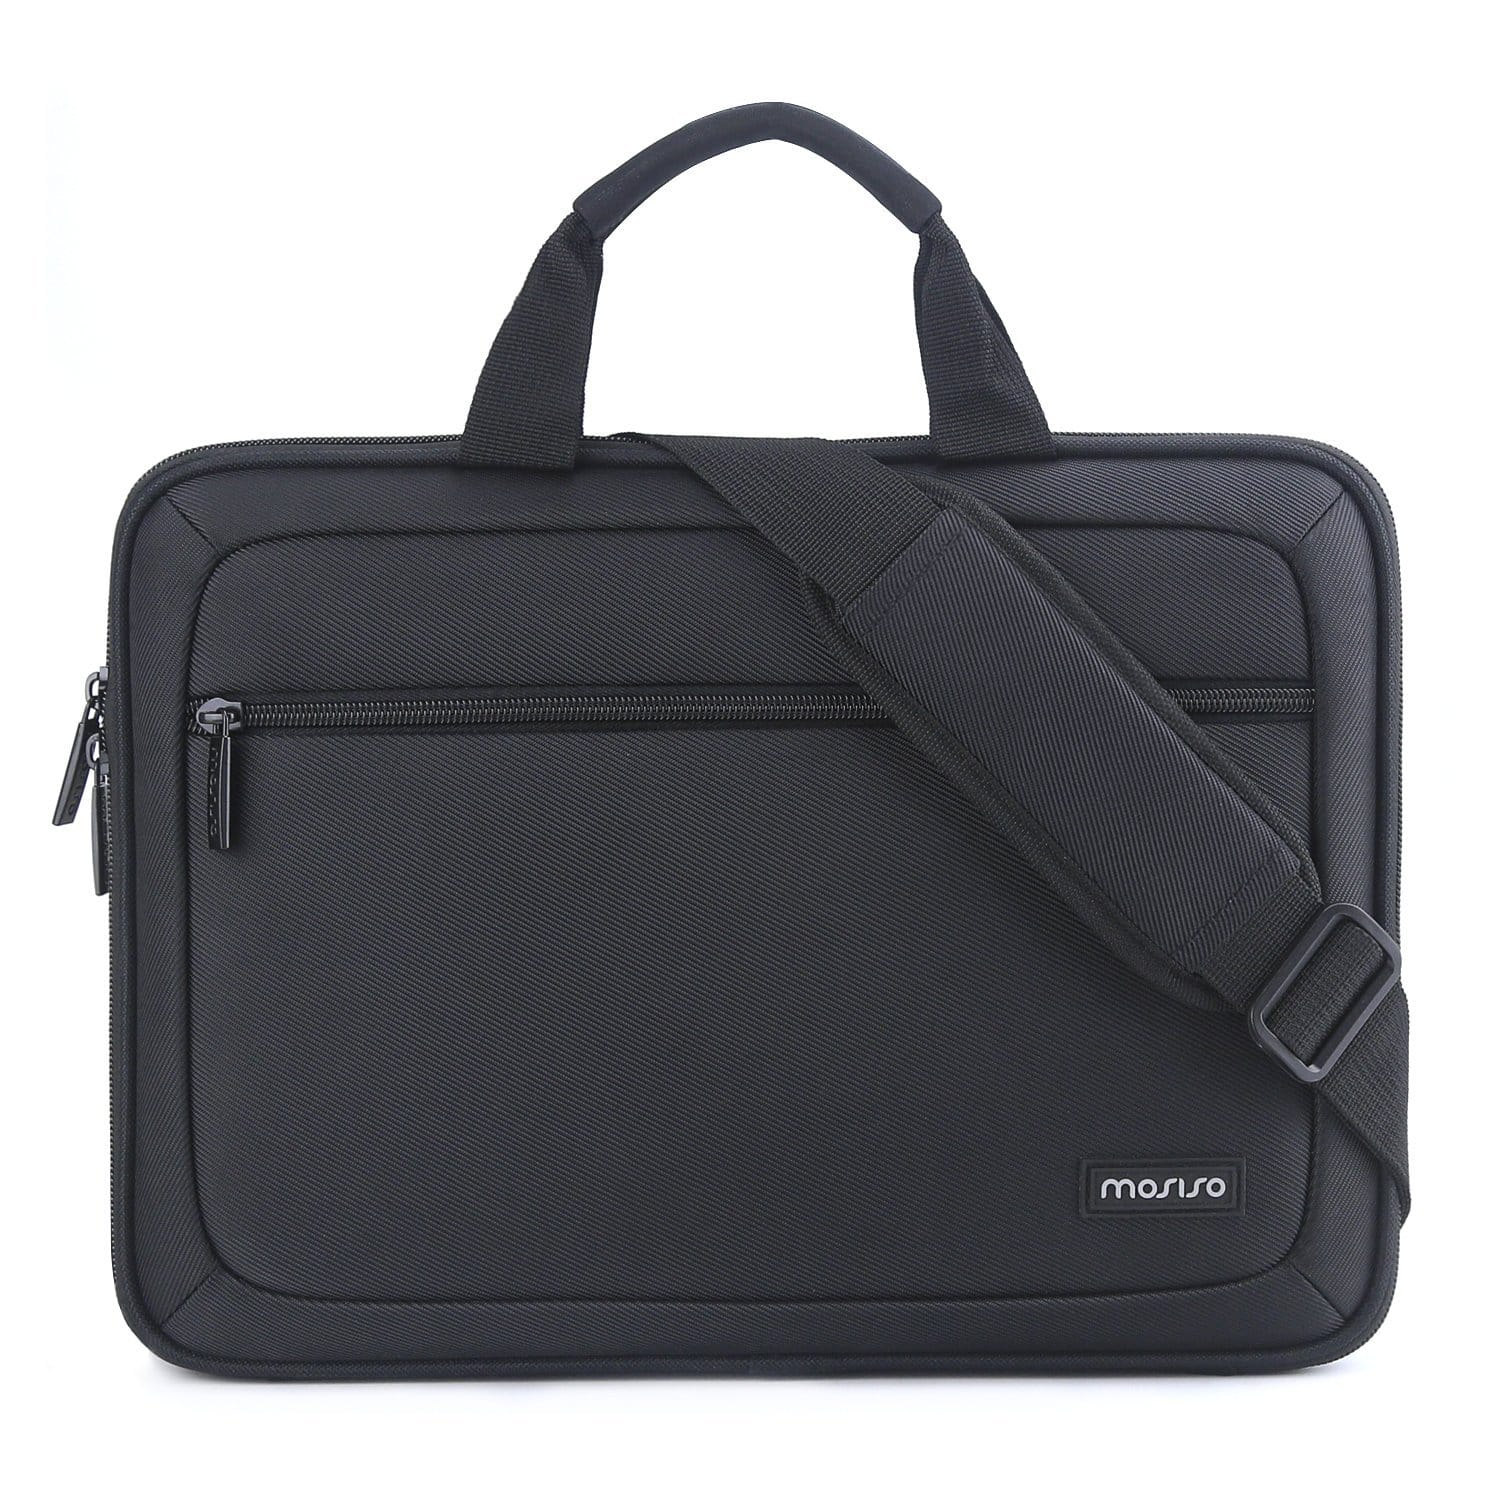 Mosiso EVA Laptop Shoulder Bag for 13-13.3 Inch Laptop for $14.24 & More + FSSS